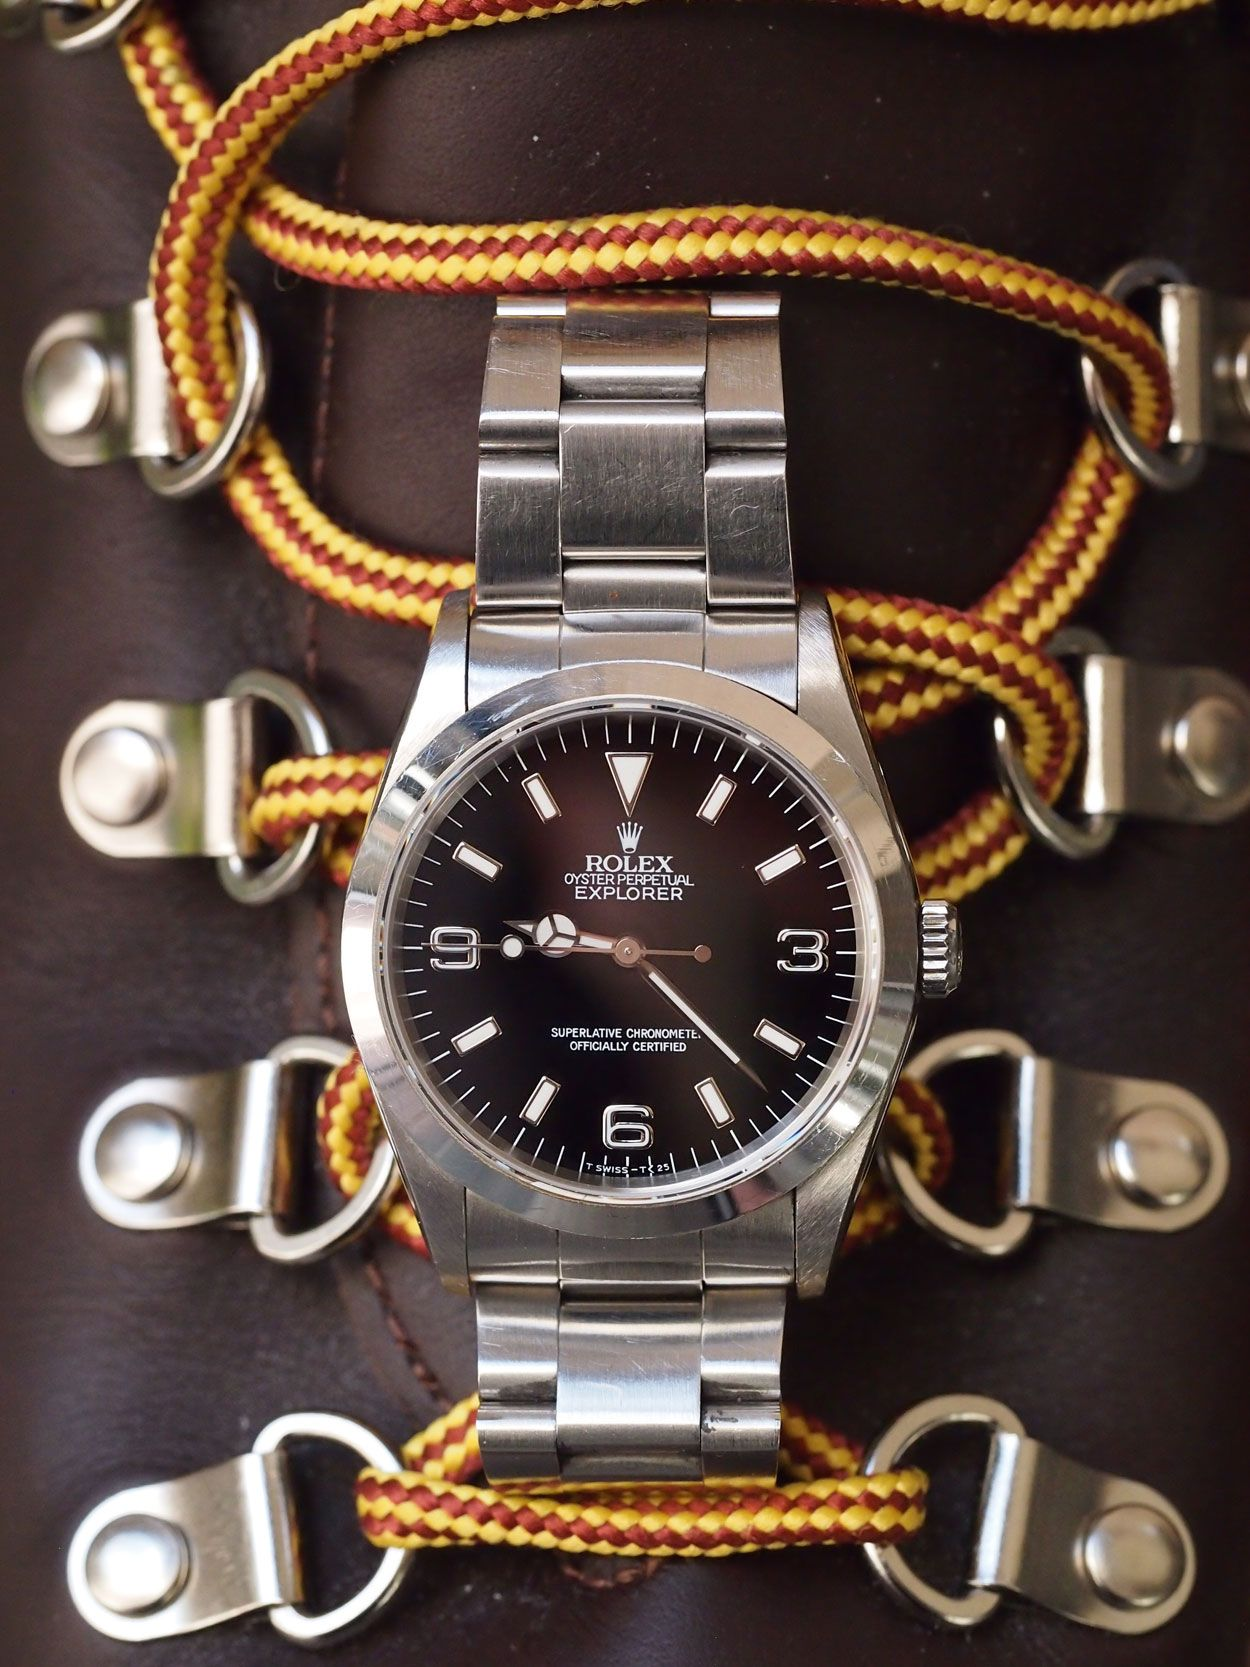 07601d72399 A  tbt article by Fratello Watches contributor Michael Stockton on his  Rolex Explorer 14270. The perfect understated watch from Rolex.